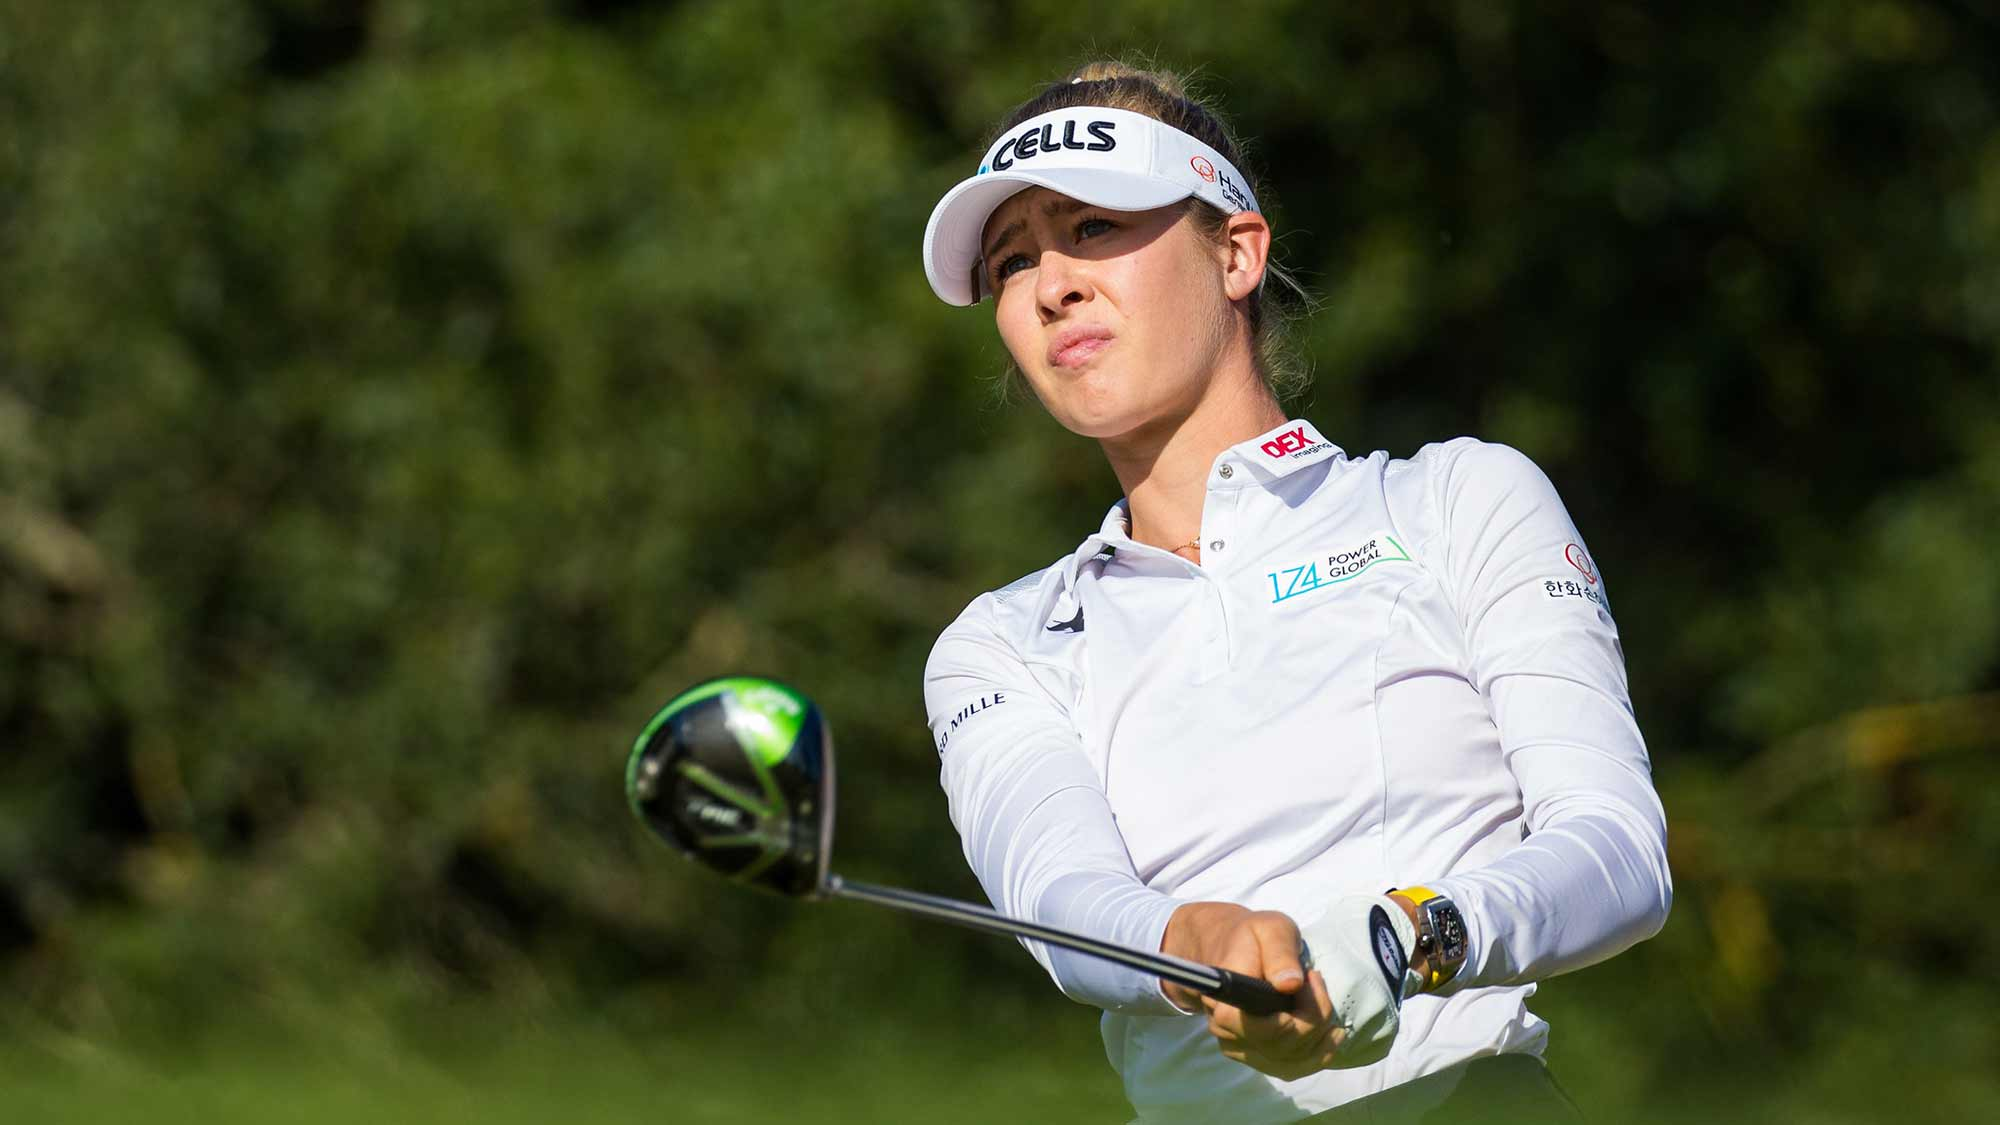 Lacoste Ladies Open de France, Golf Du Medoc, France. 19-22 September 2019. Nelly Korda of the USA during the second round.